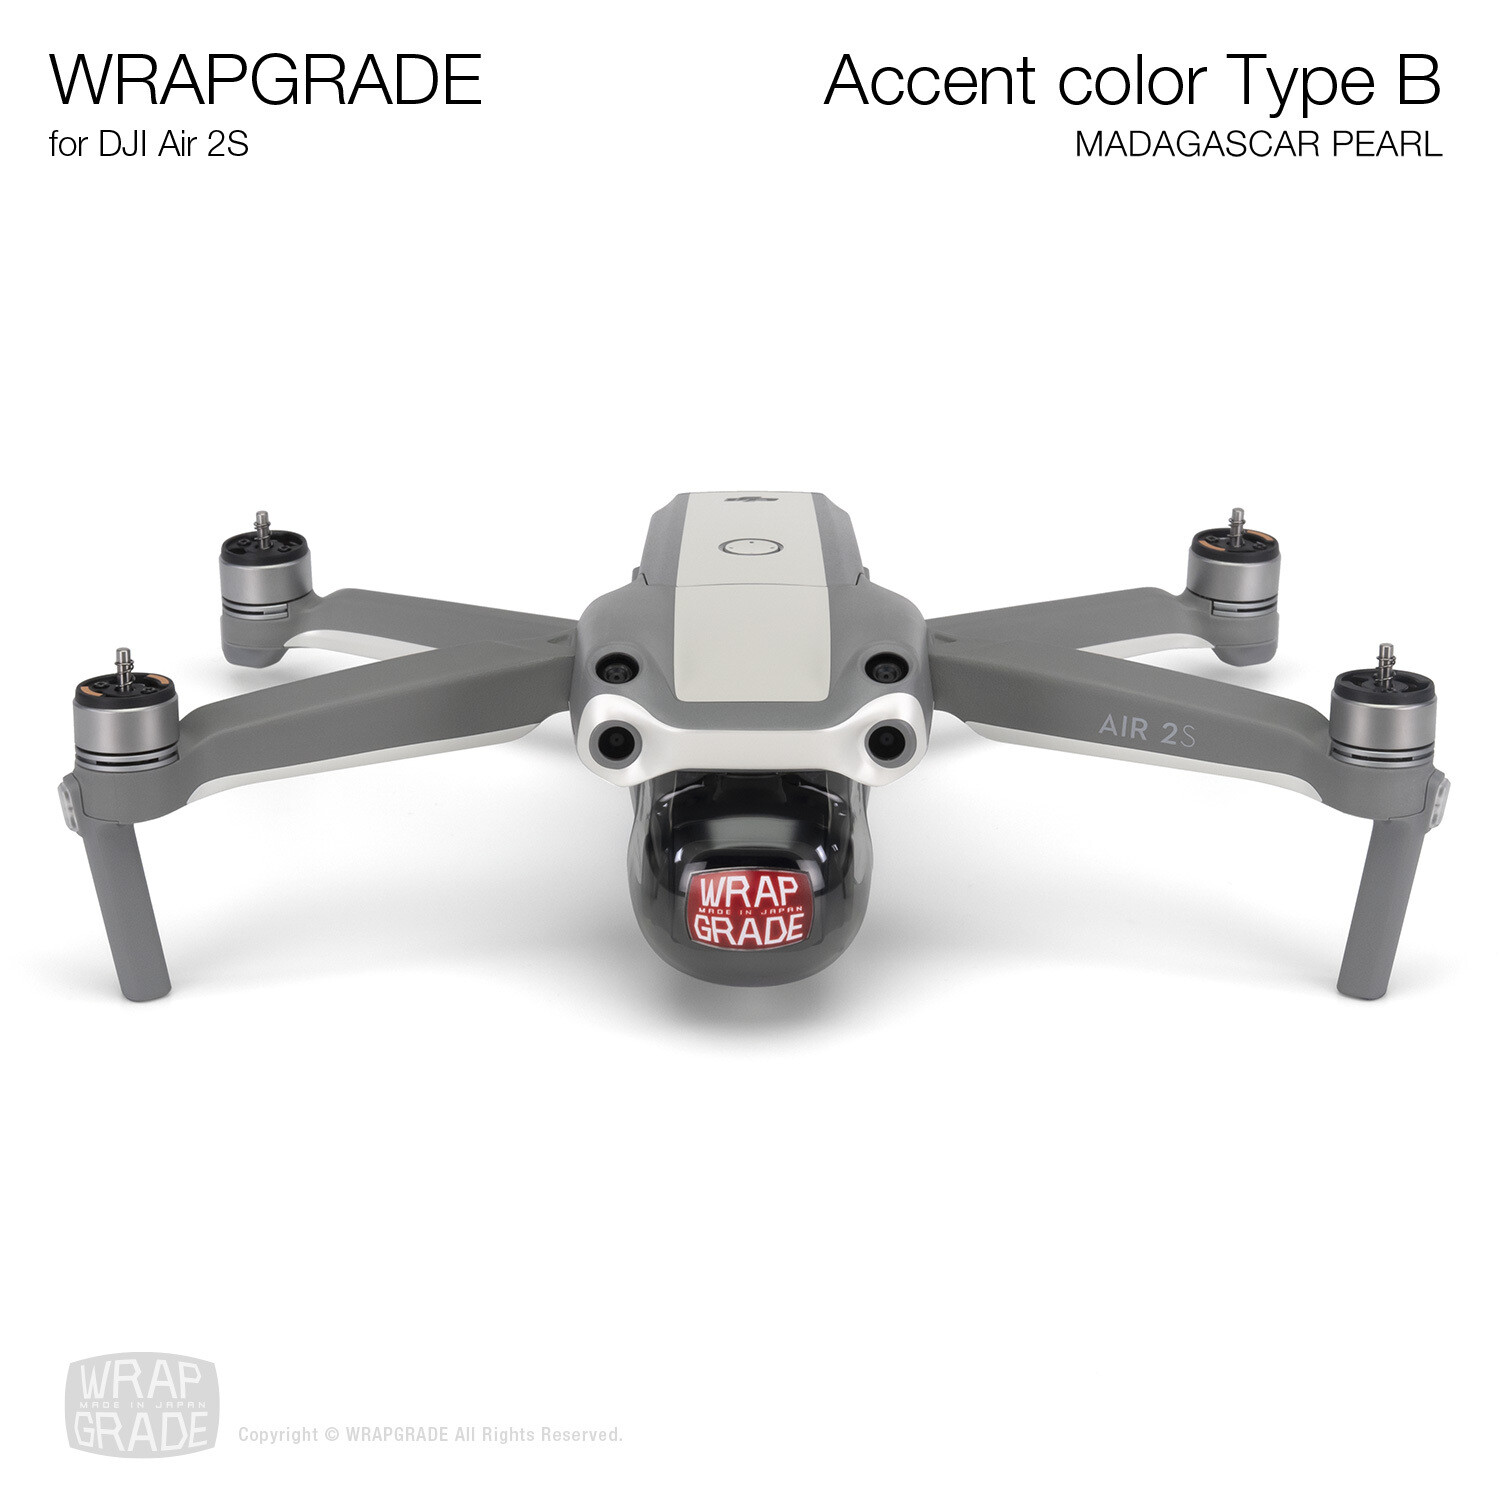 Wrapgrade Skin for DJI Air 2S   Accent Color B (MADAGASCAR PEARL)